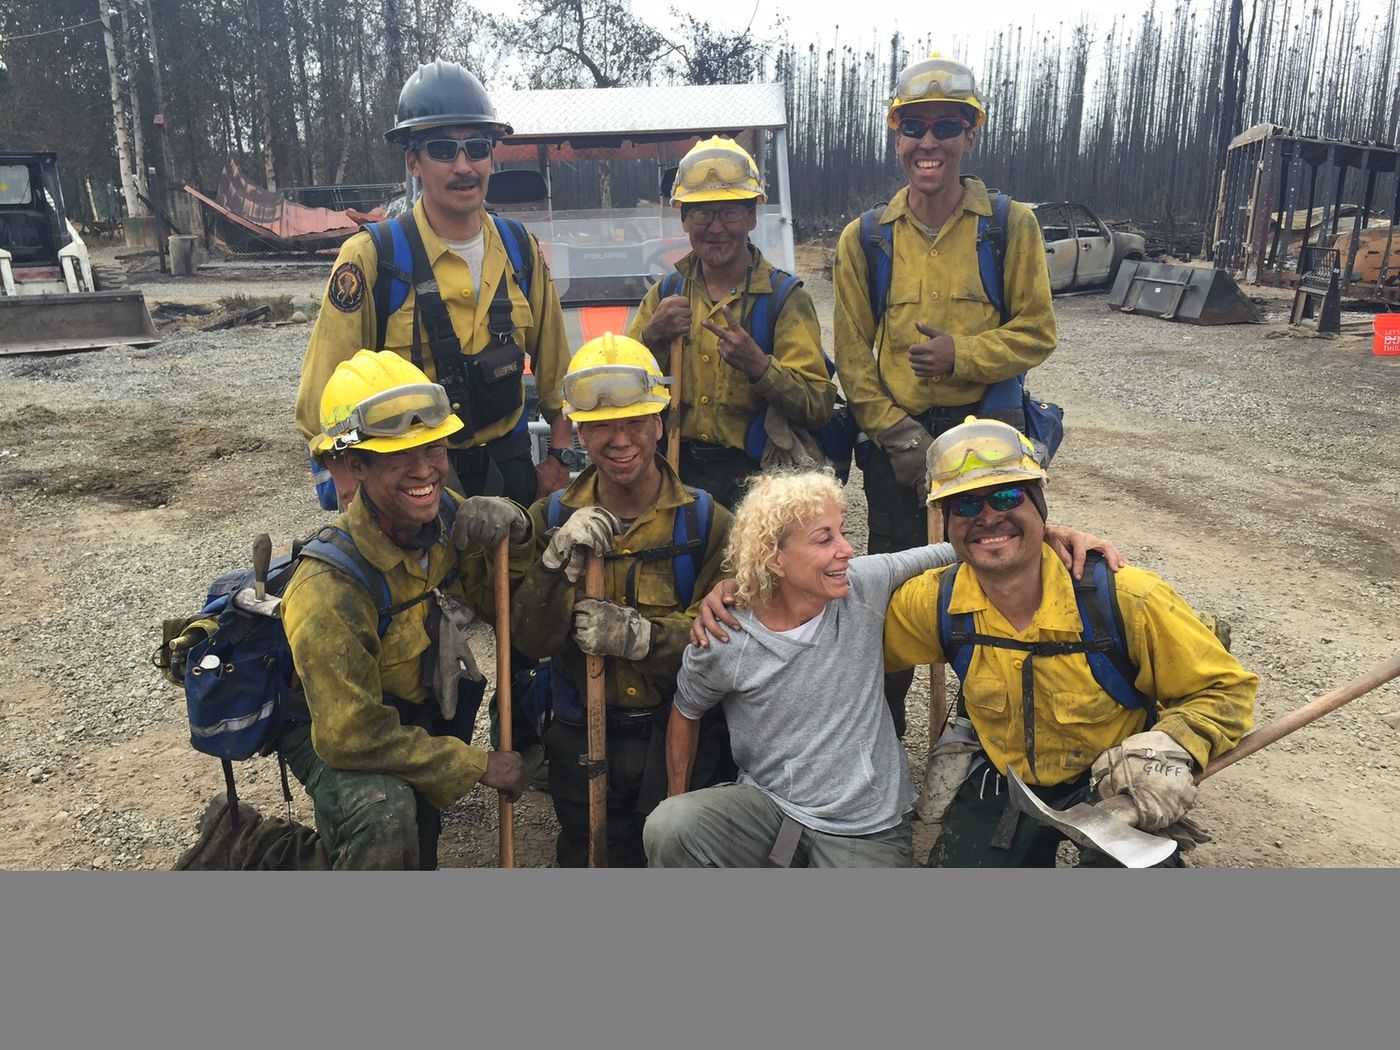 DeeDee Jonrowe and part of the Chevak Fire Crew. Photographed on Sunday, June 21, 2015.